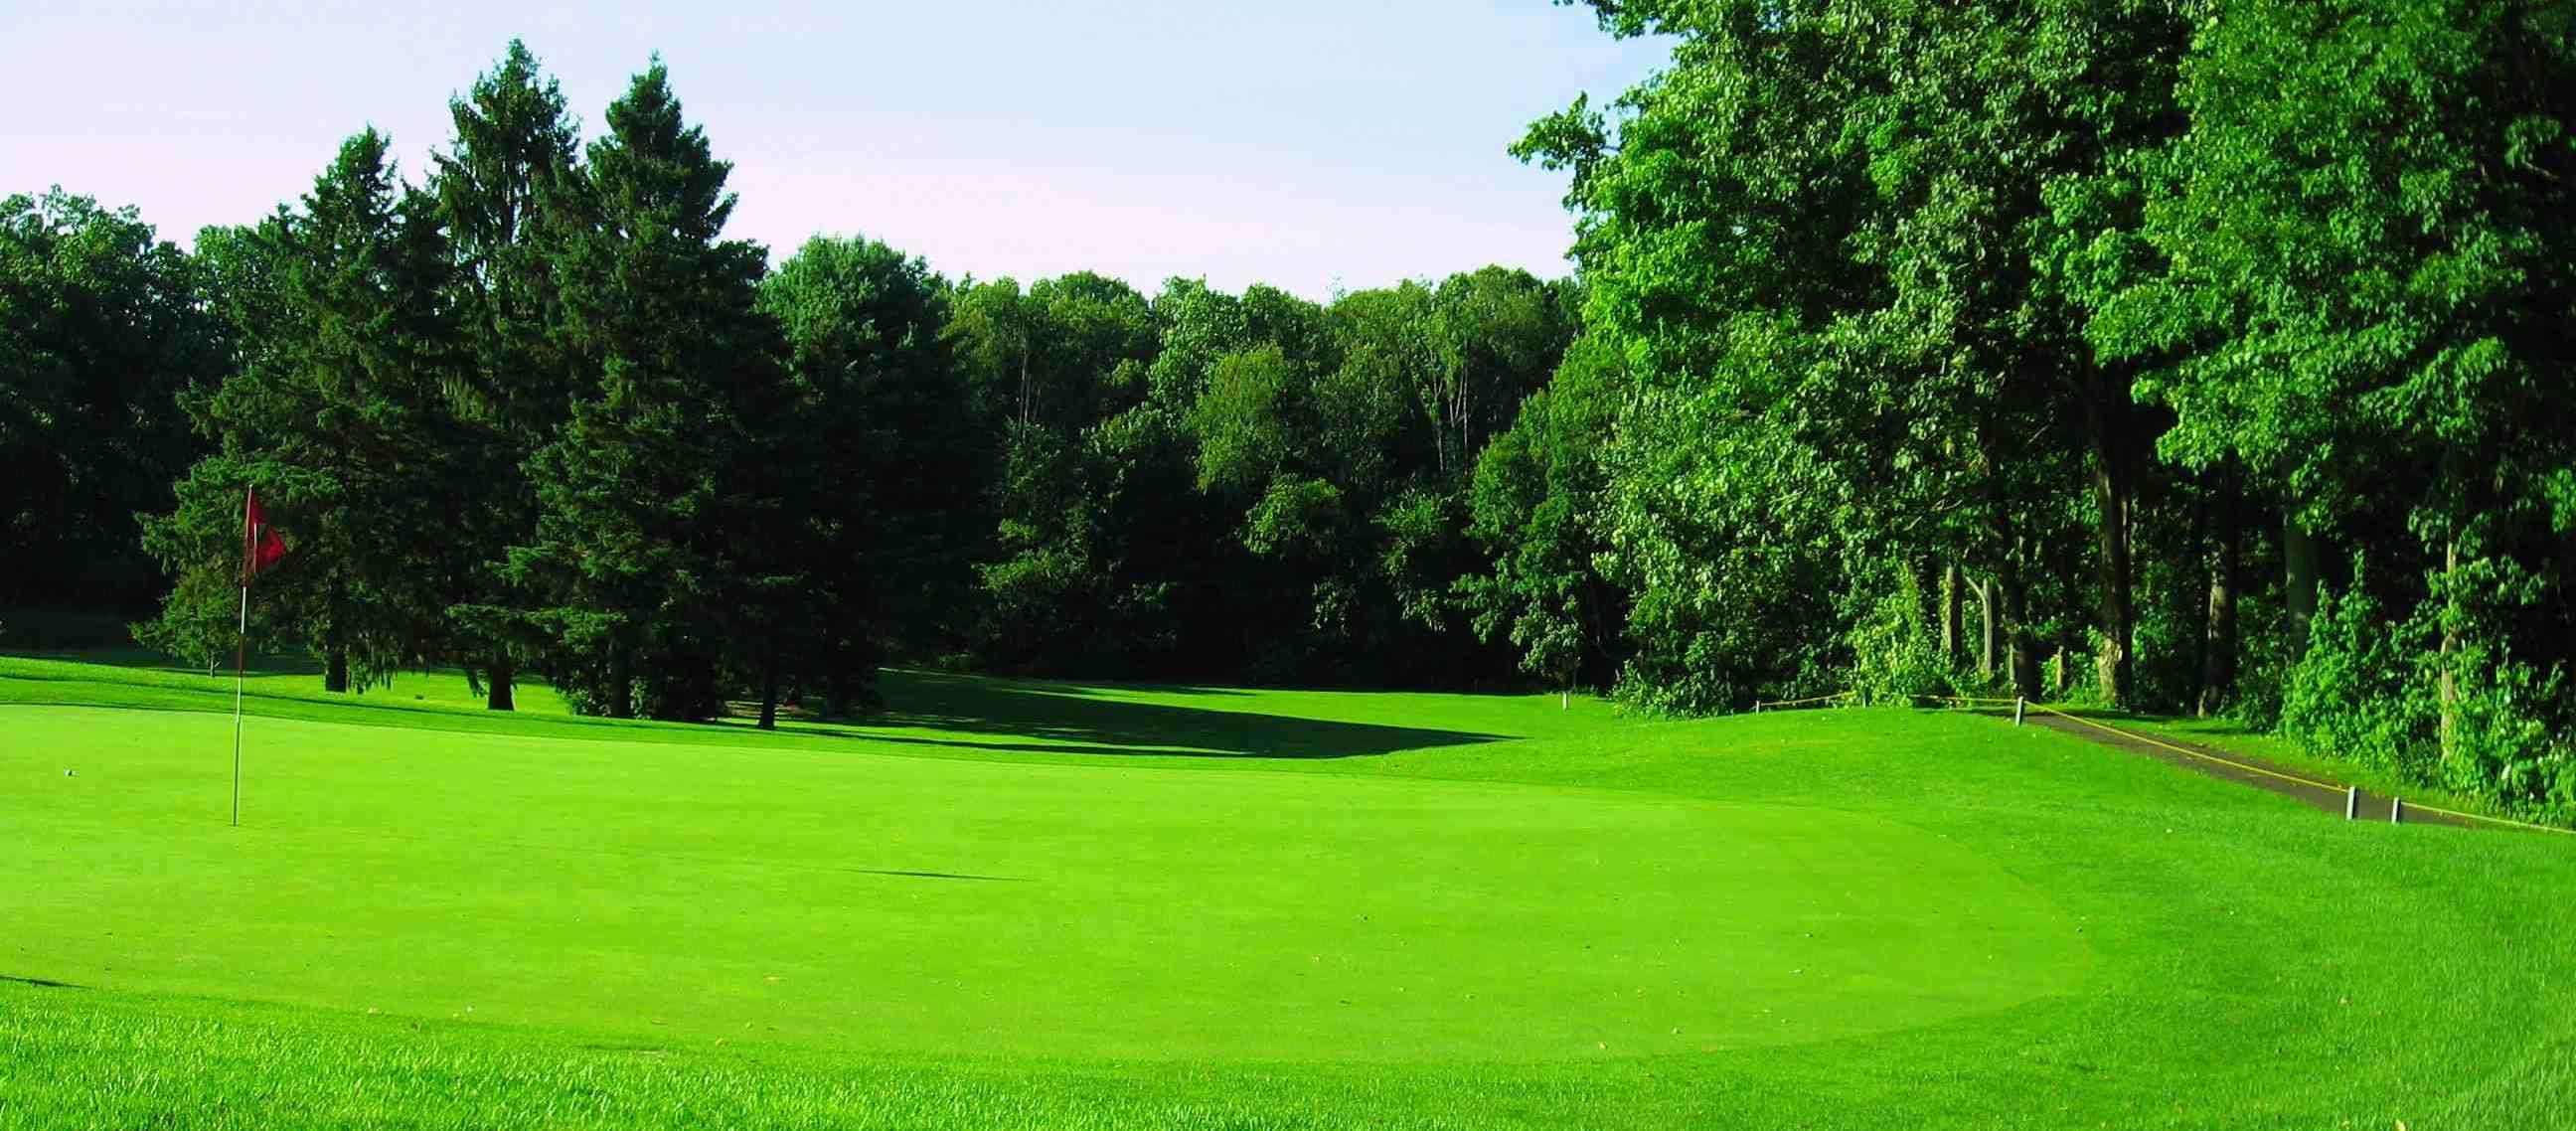 Res: 2592x1138, ... Lovely Golf Course HD Pics Gallery, XEL-1539683 ...